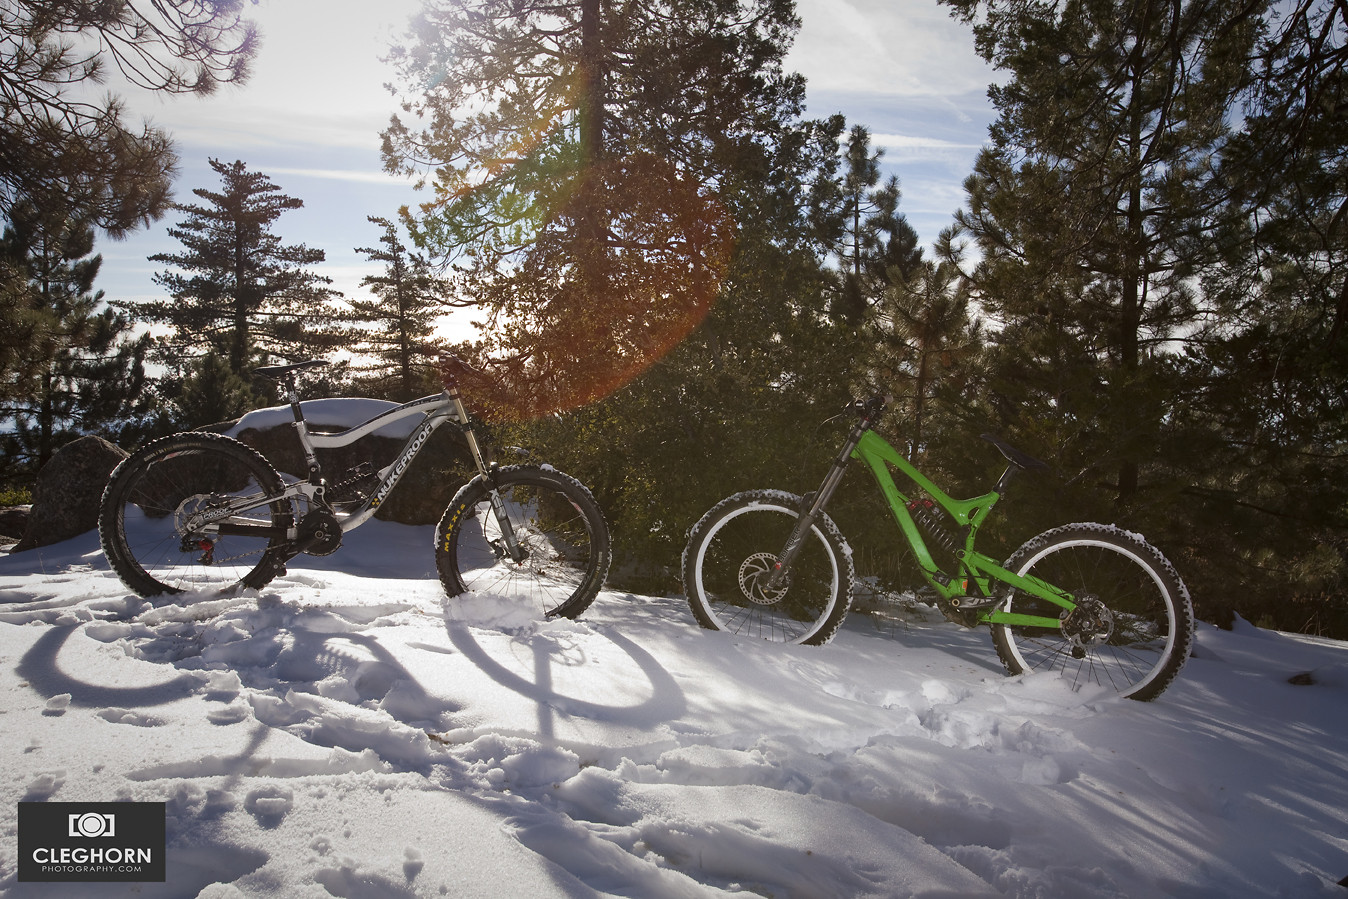 The rigs - Cleghorn Photography - Mountain Biking Pictures - Vital MTB